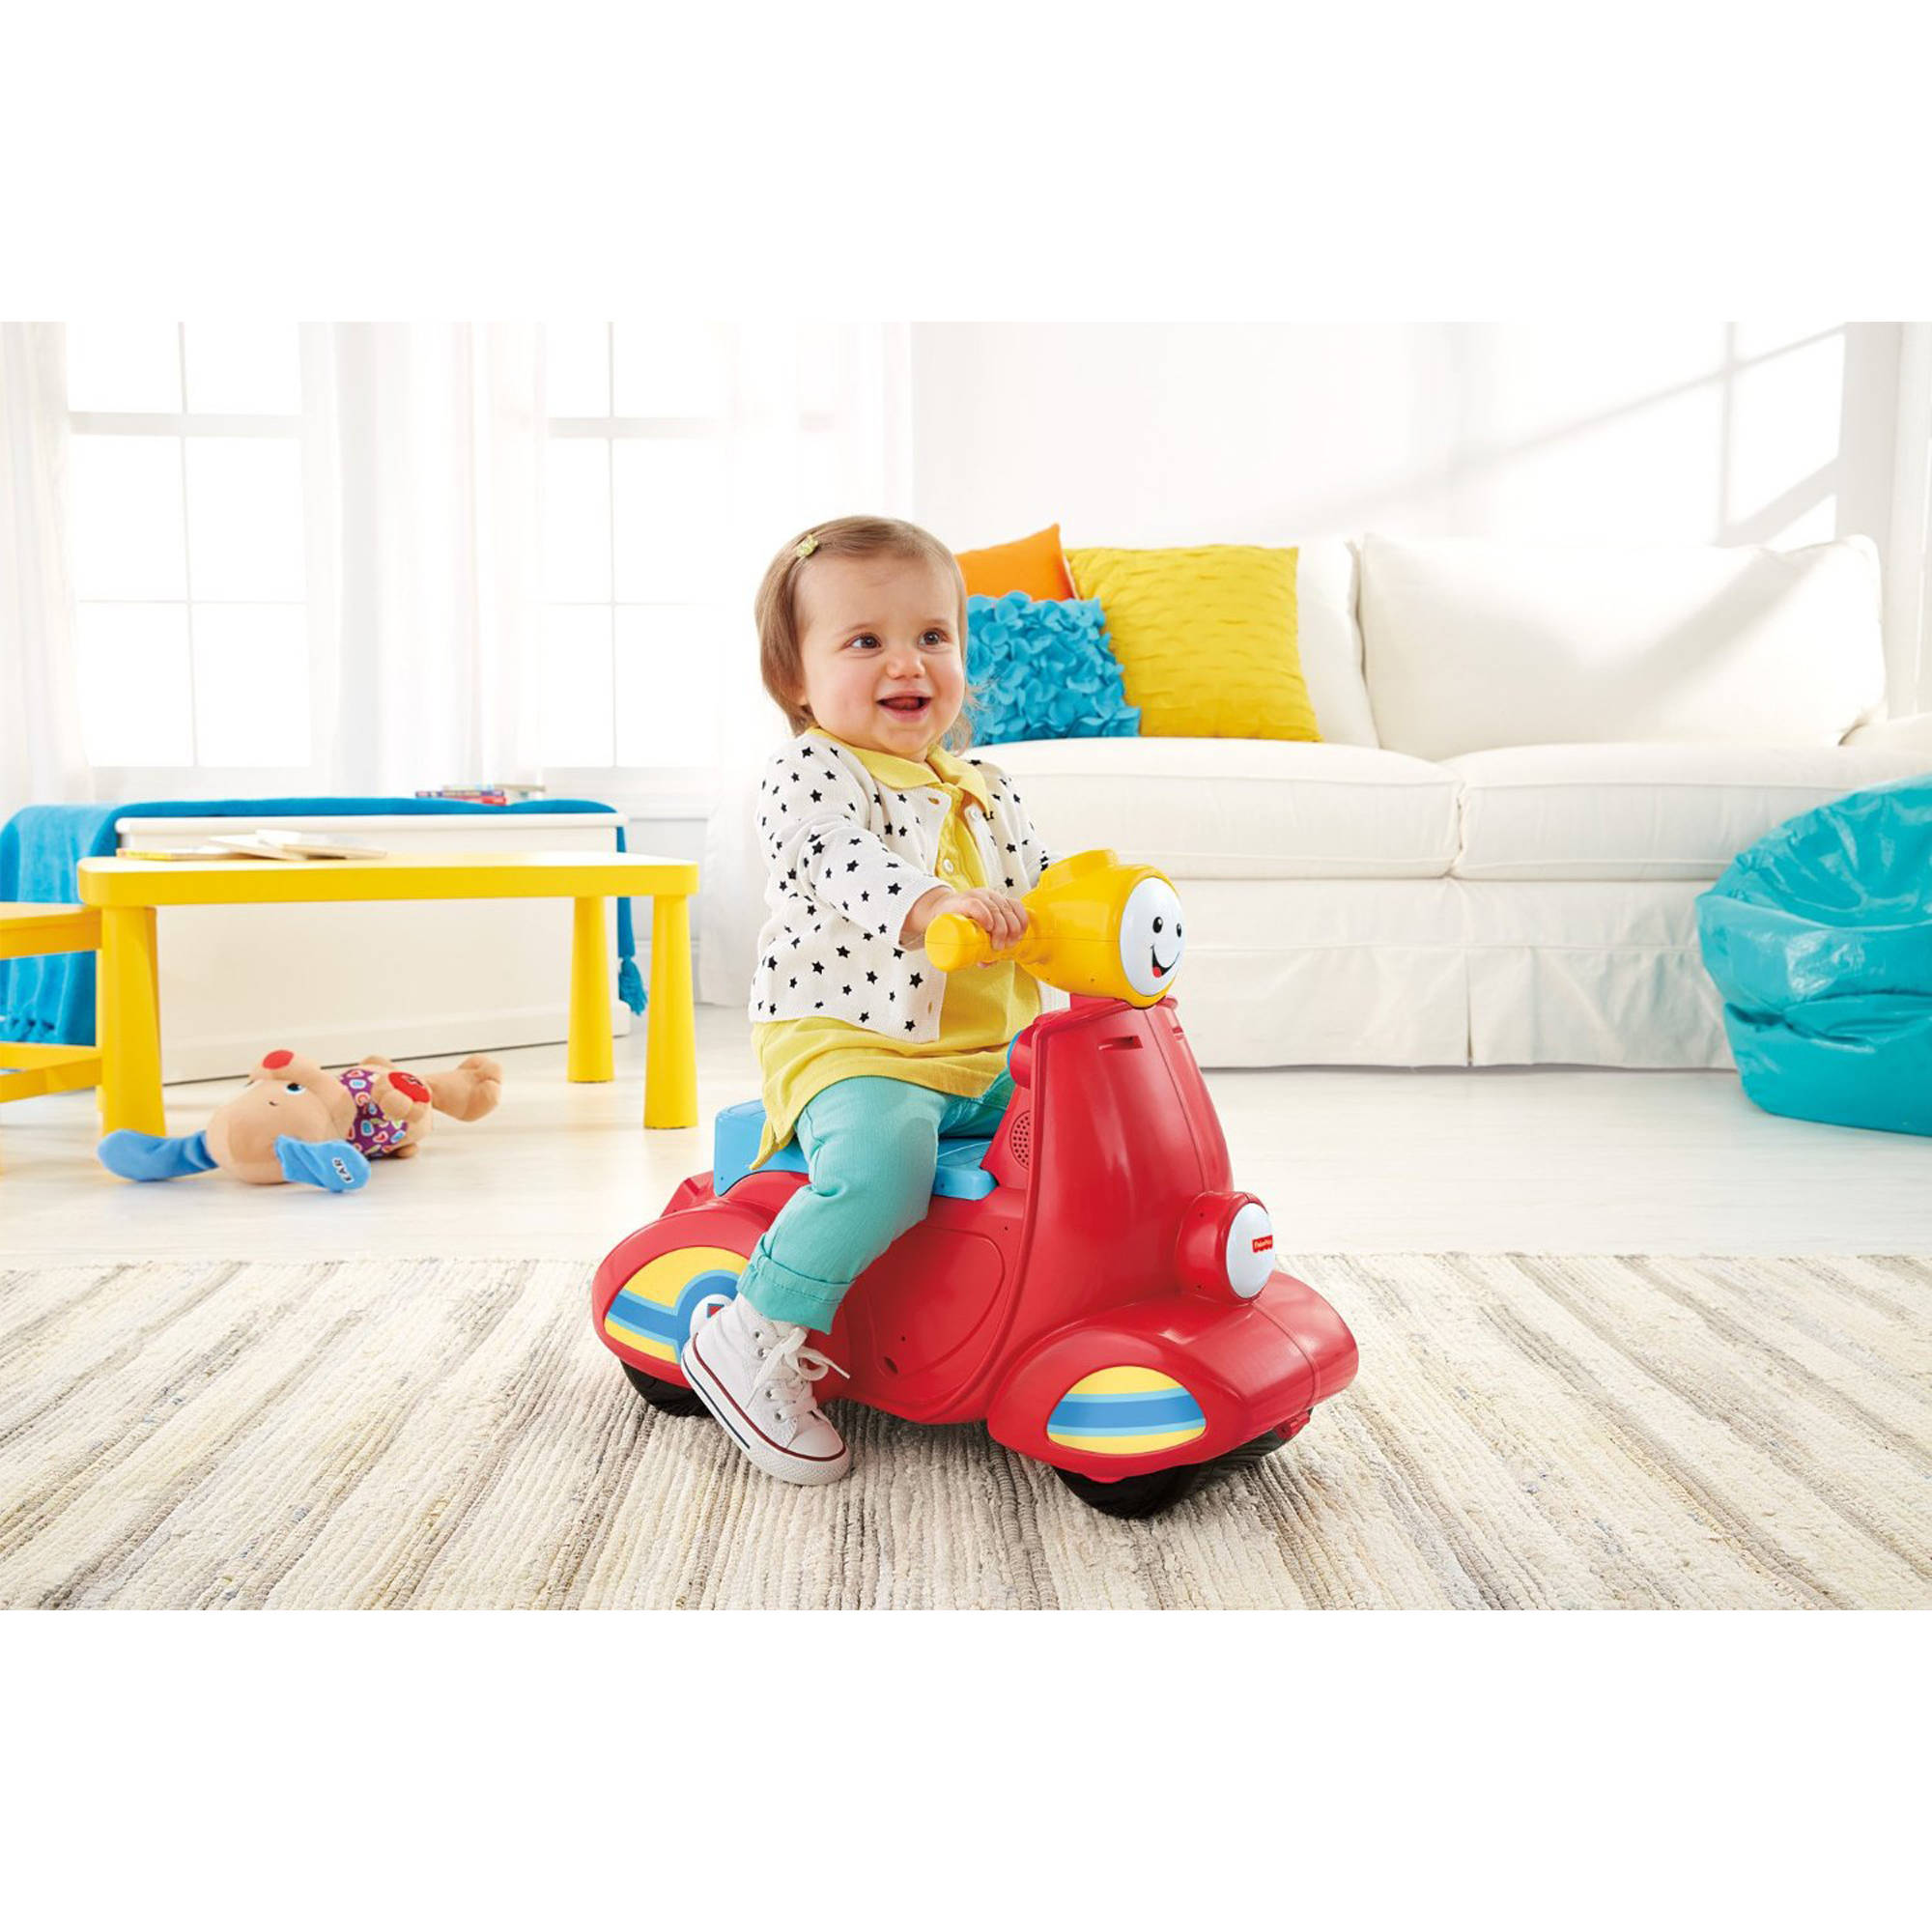 Toys For Toddlers One To Three Years : Ride on toys for girls toddlers riding year old gifts